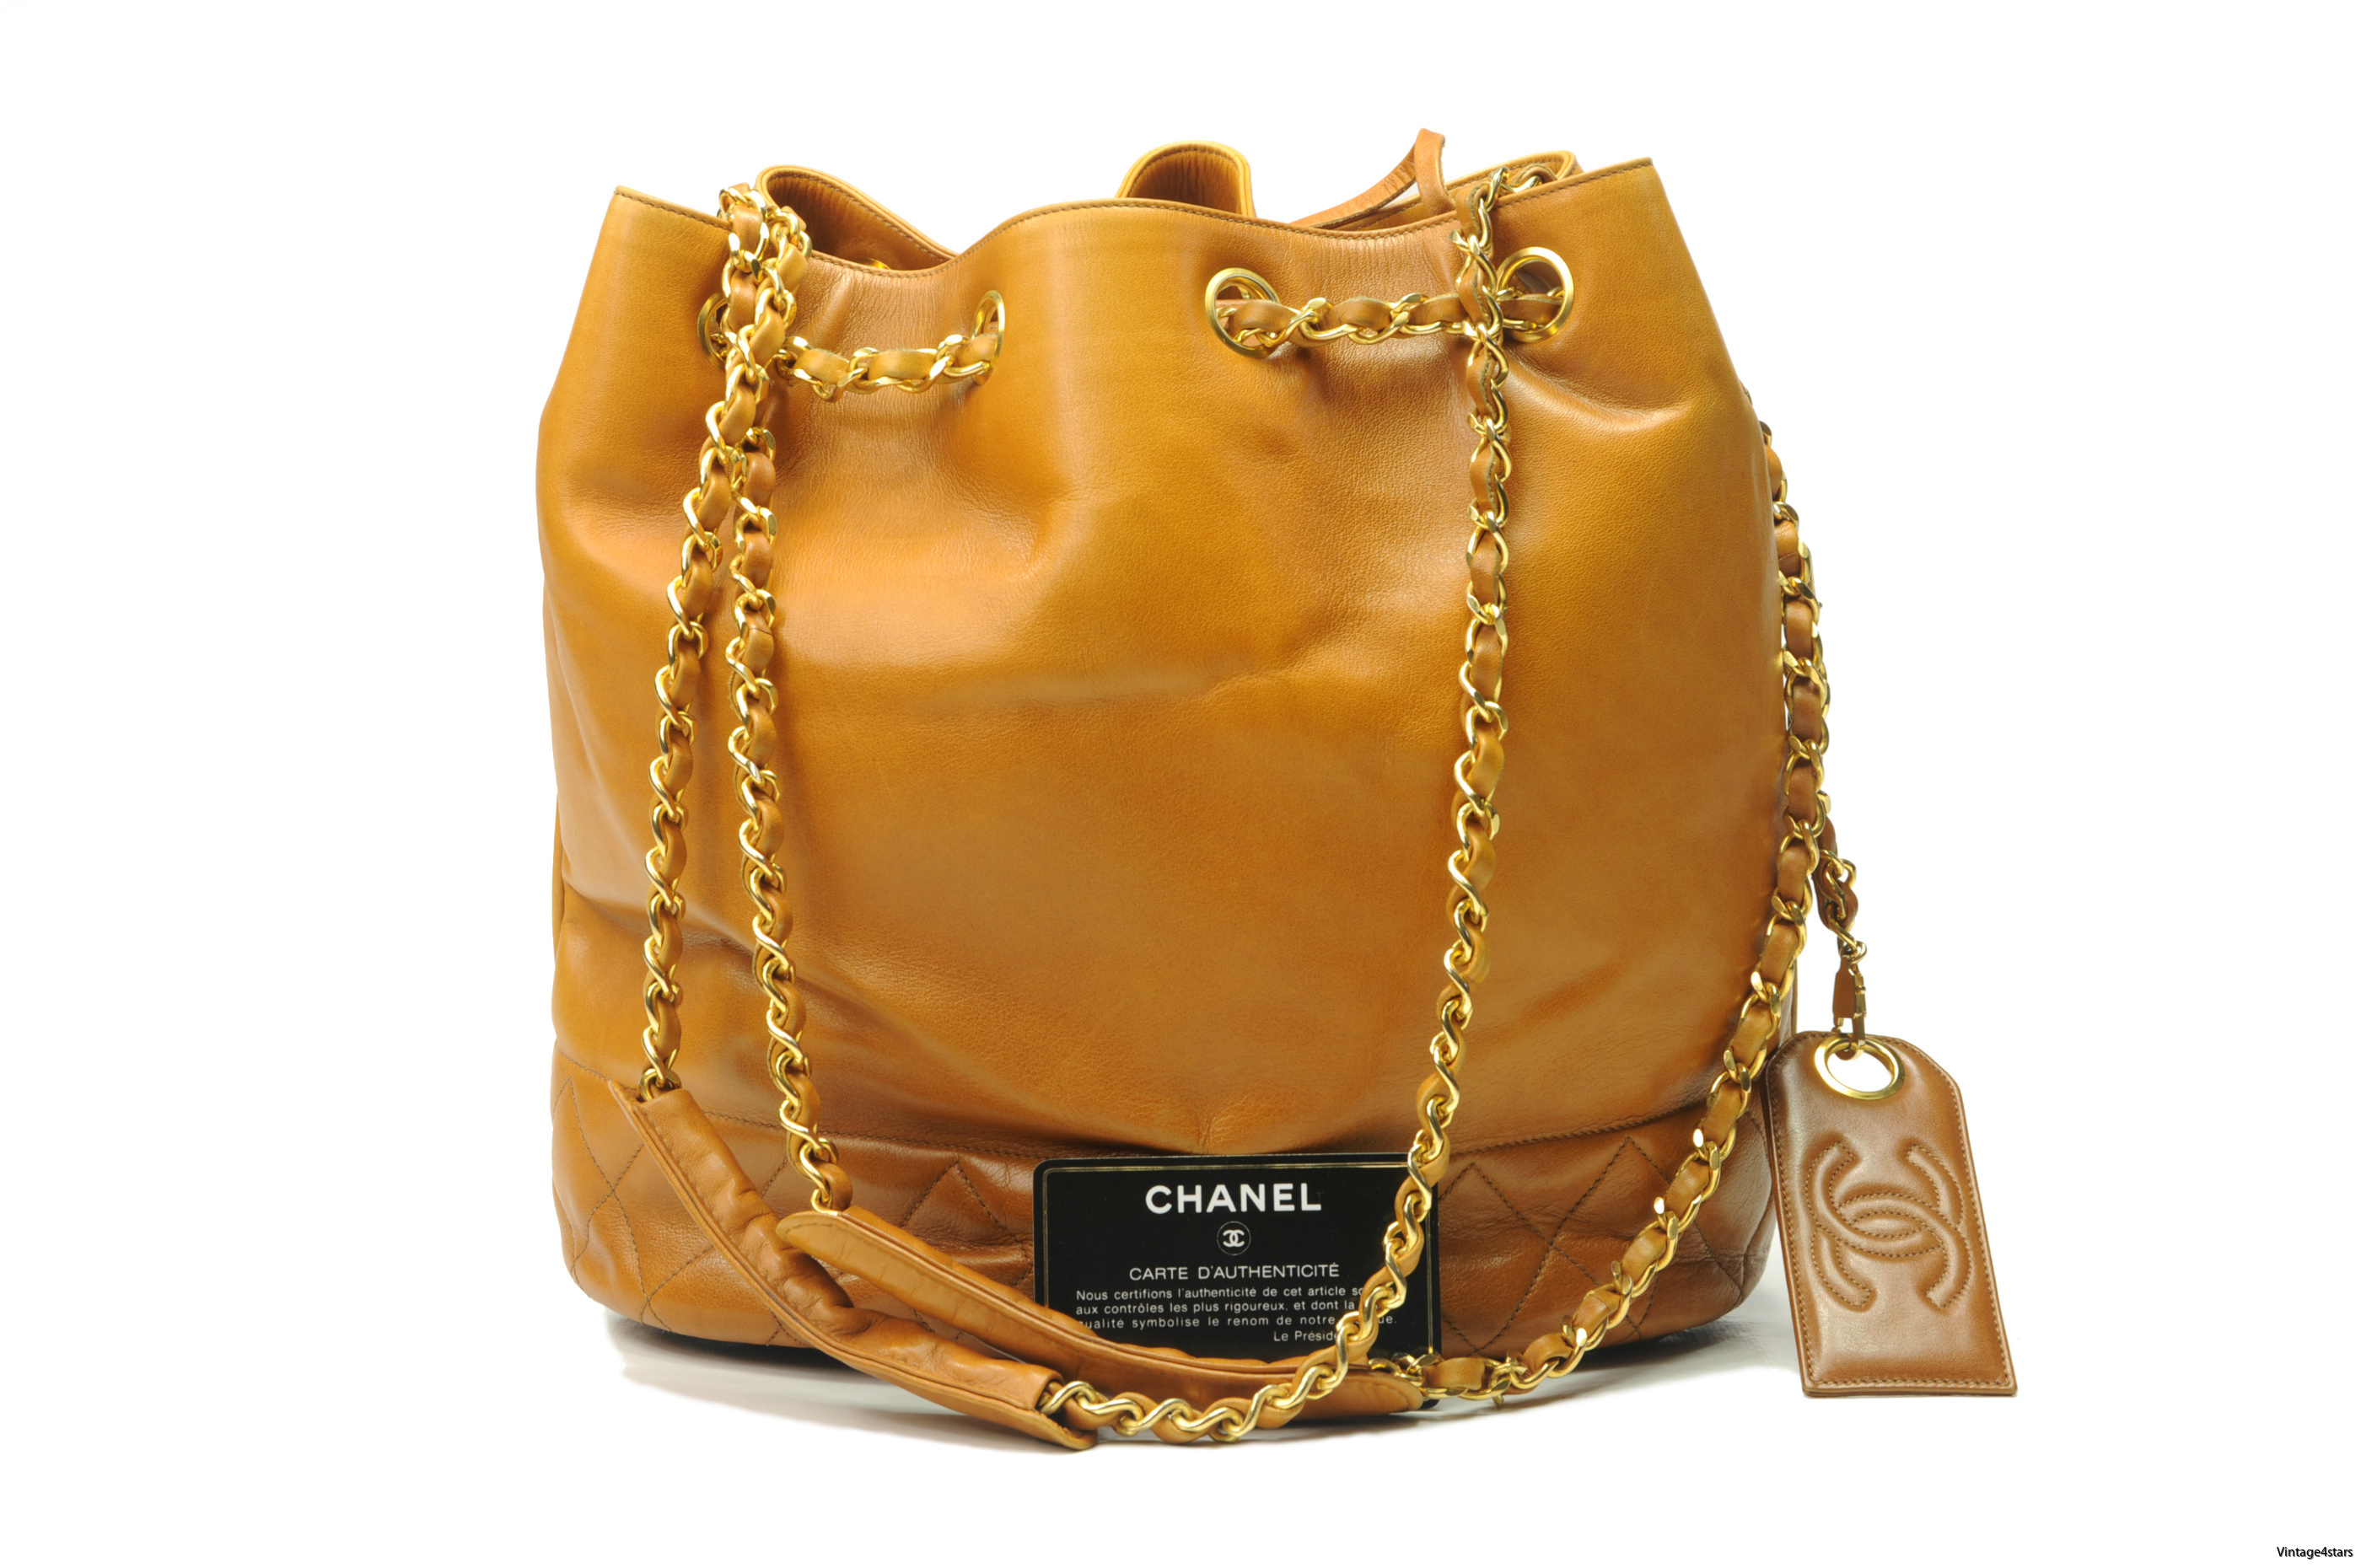 CHANEL Drawstring Shoulder bag 2